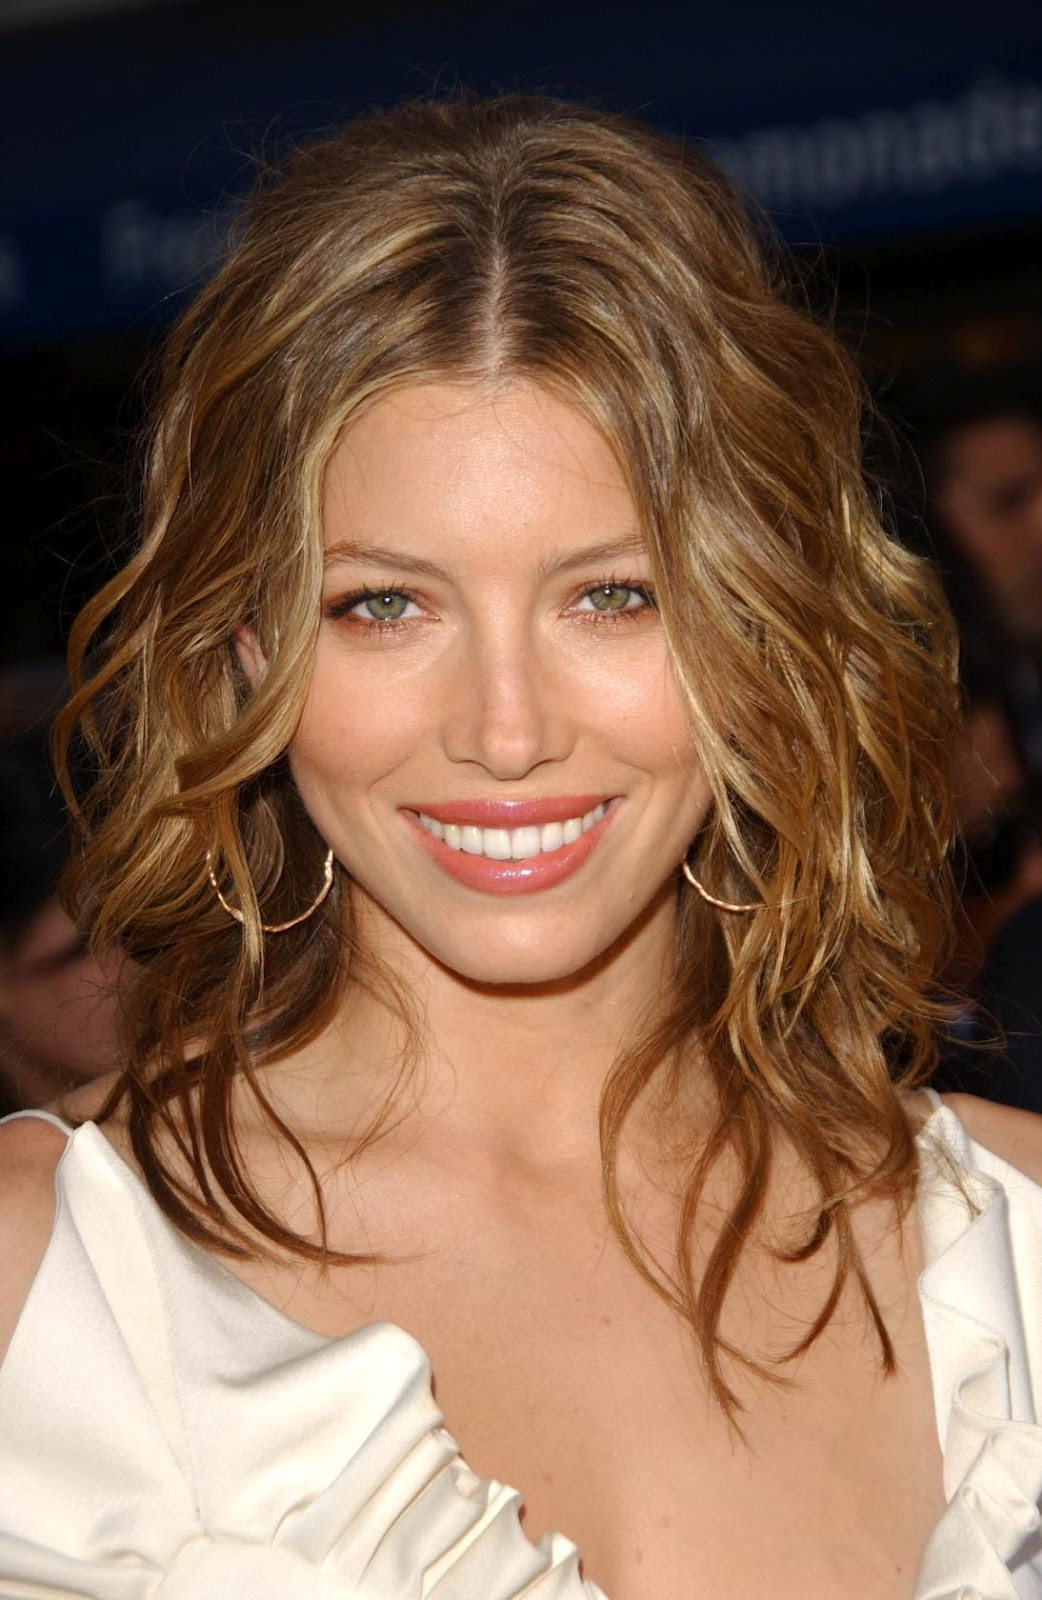 http://2.bp.blogspot.com/-nYtctQp2HsQ/T0P1_8wcrqI/AAAAAAAACbE/lsLdeIvKjN8/s1600/jessica-biel-beal-Actress-hairstyle-picture-photos-images-jessica-film-modeling-acting%2B%25252829%252529.jpg